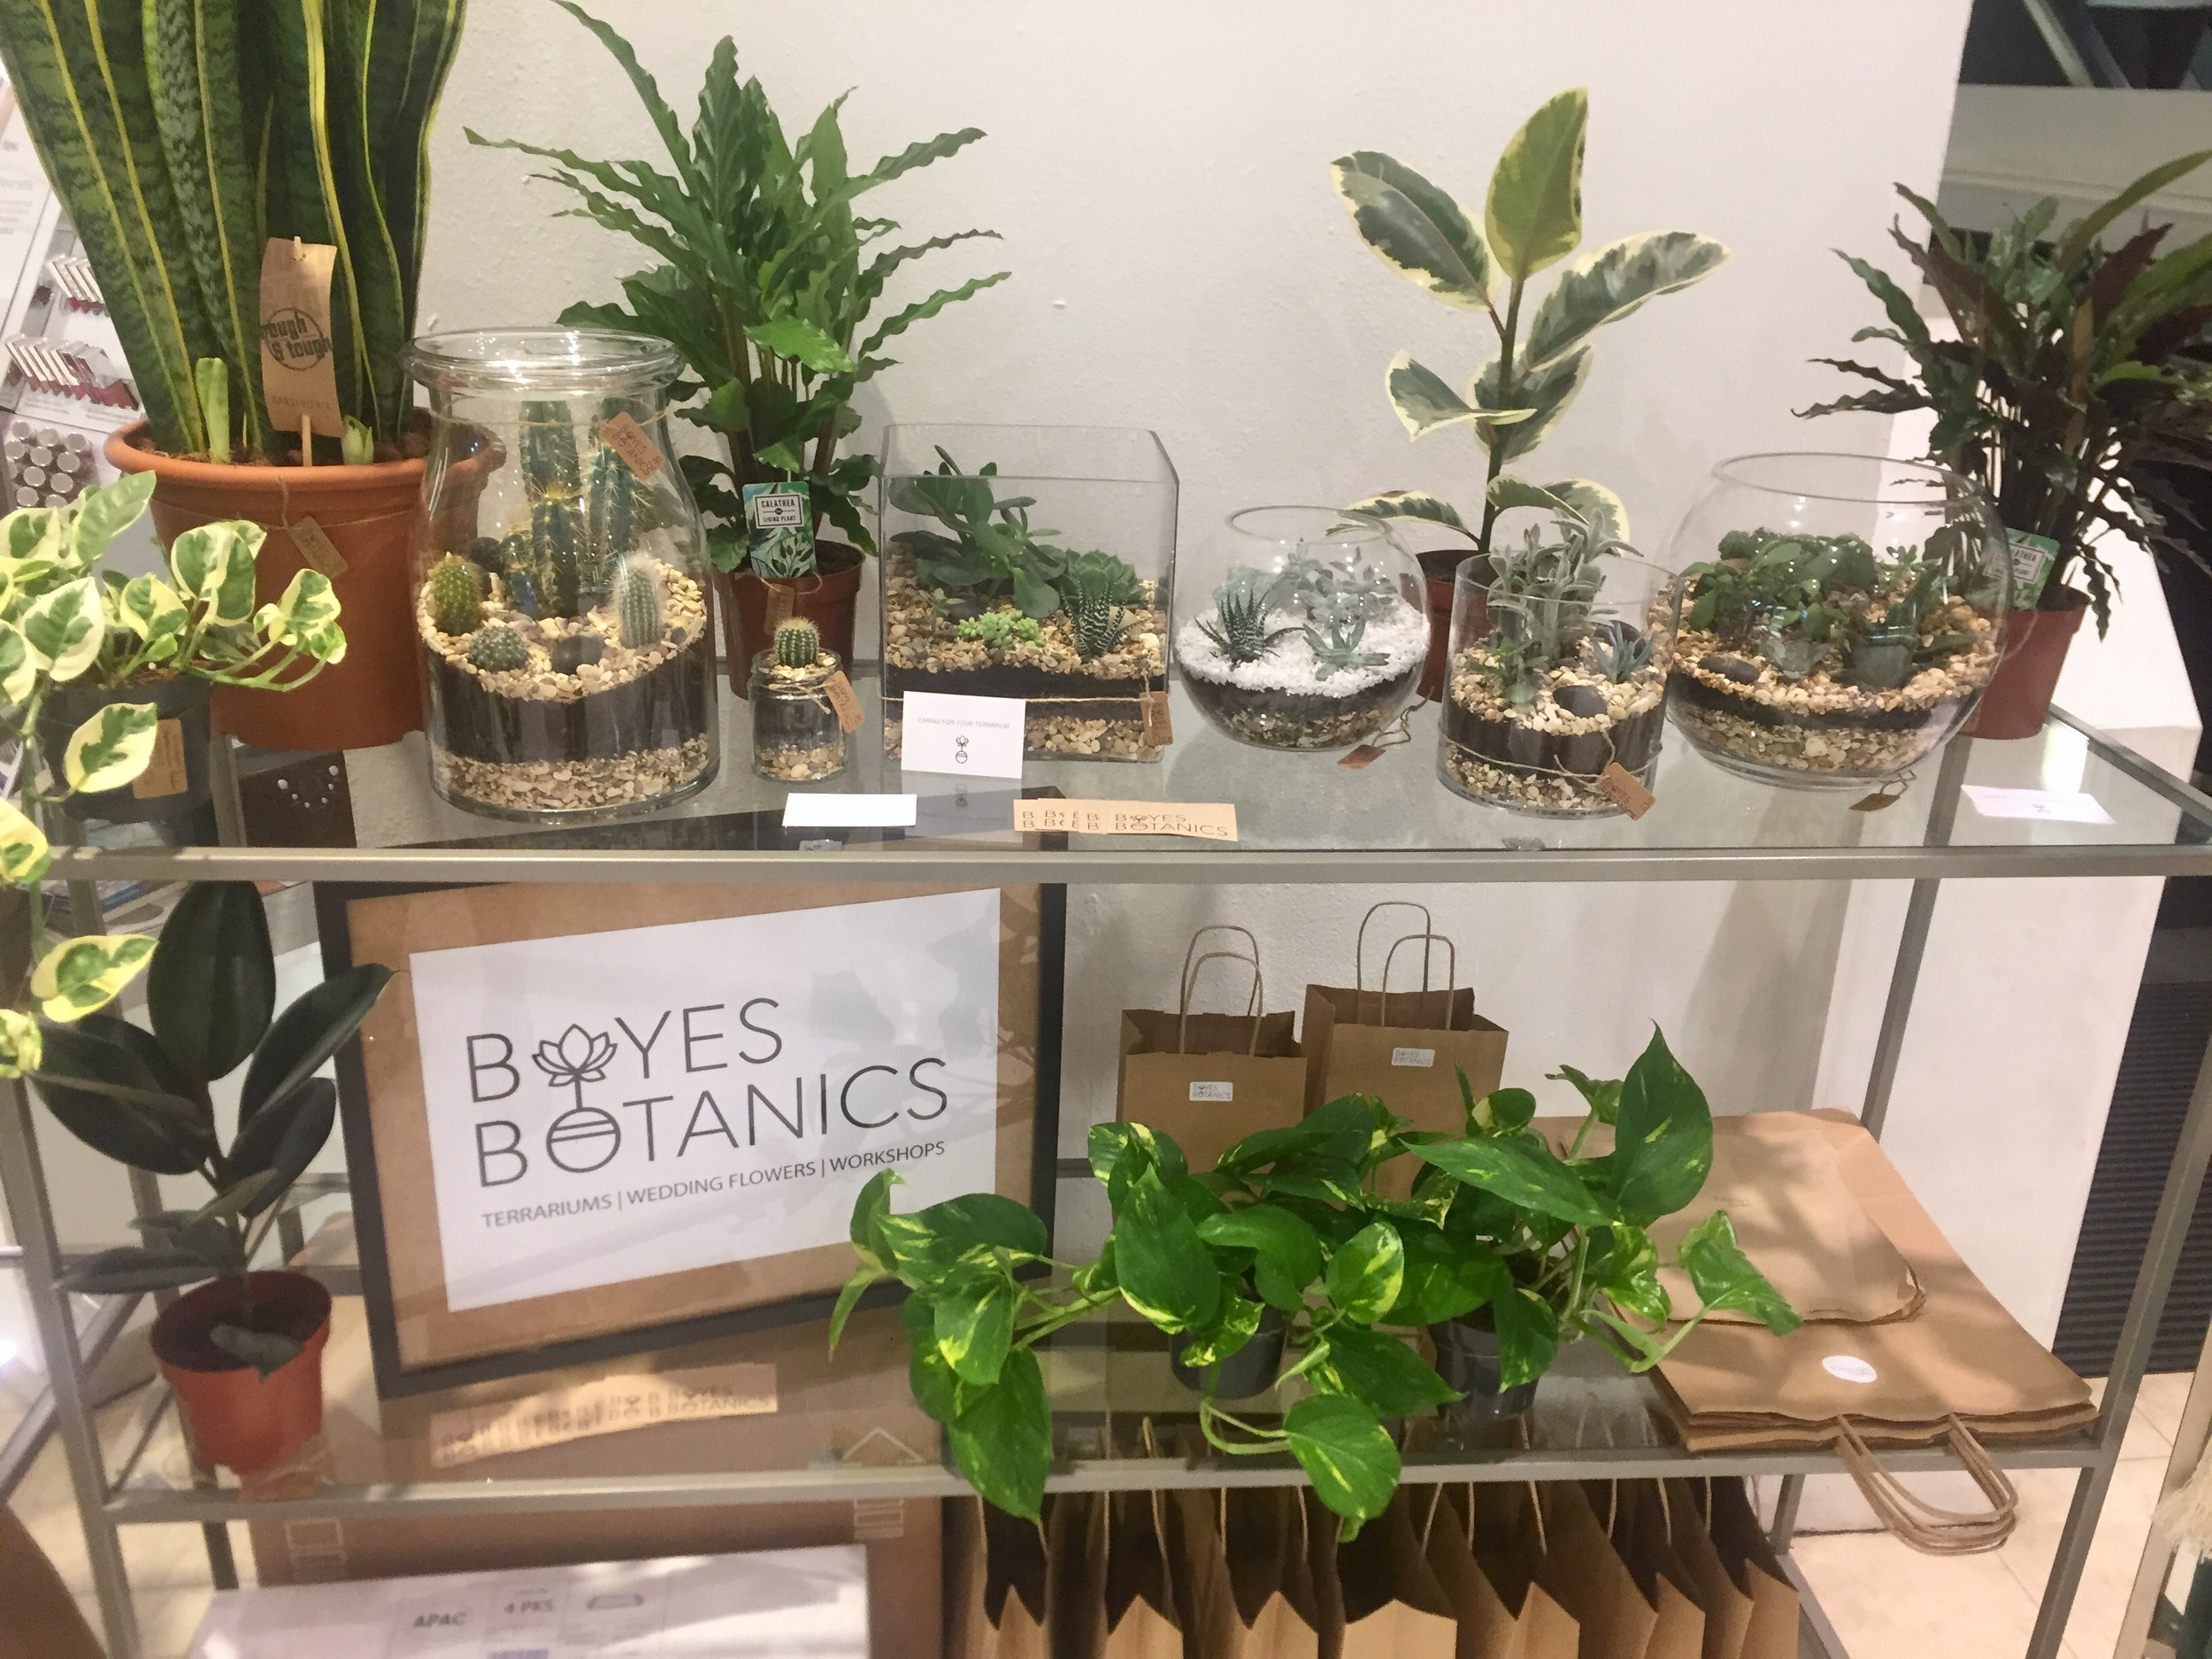 FOLIAGE FOR YOUR HOME - There was a selection of hand made terrariums in various sizes and low maintenance house plants available to purchase. As well as macrame plant hangers to hang your plant, these were big in the 60's and have been making a come back!